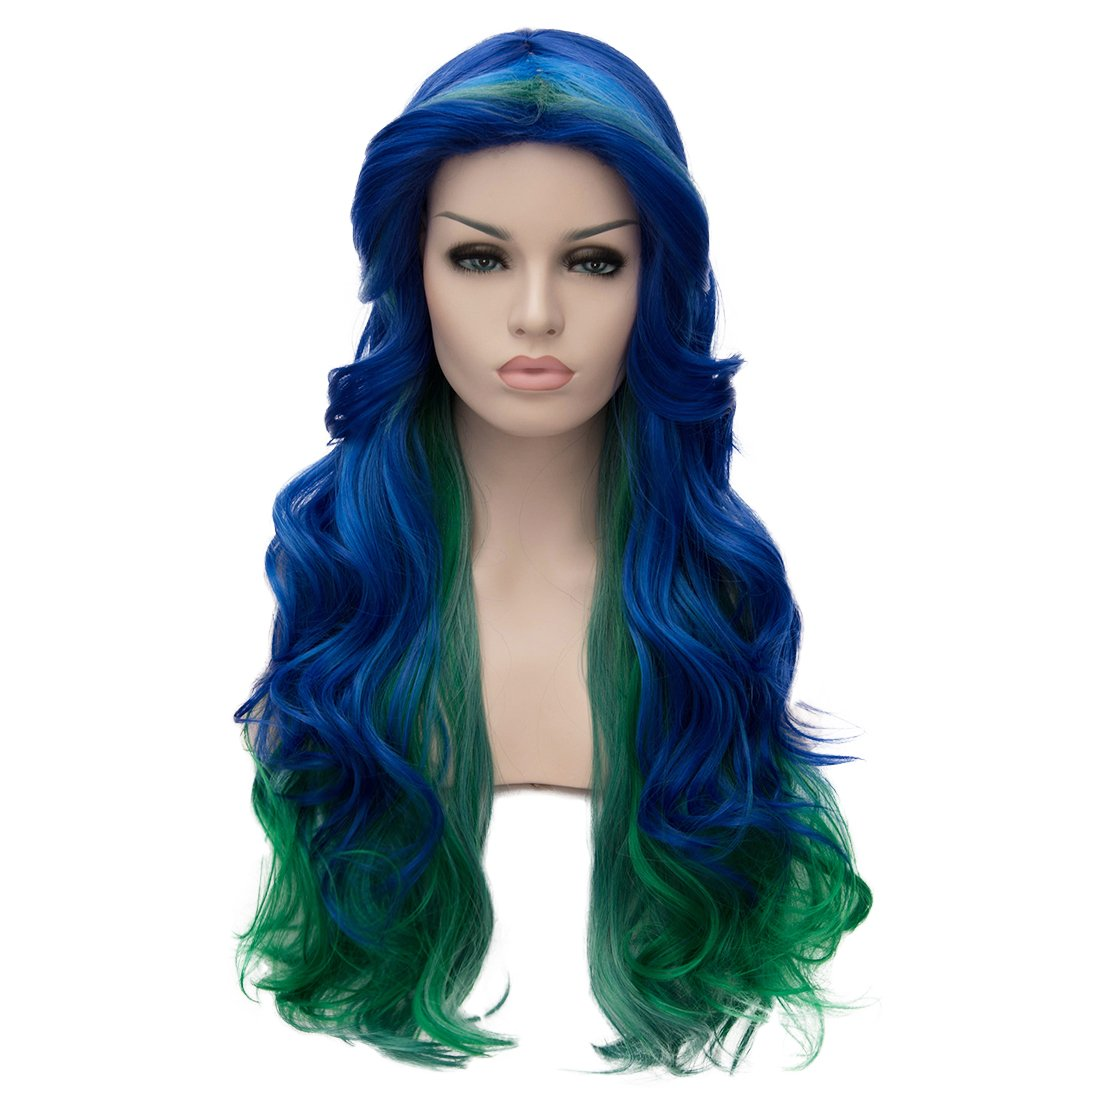 Alacos 70cm Long Curly Heat Resistant Fiber Hair Multicolored Holiday Party Dressed Up Cosplay Wigs for Women+ Wig Cap